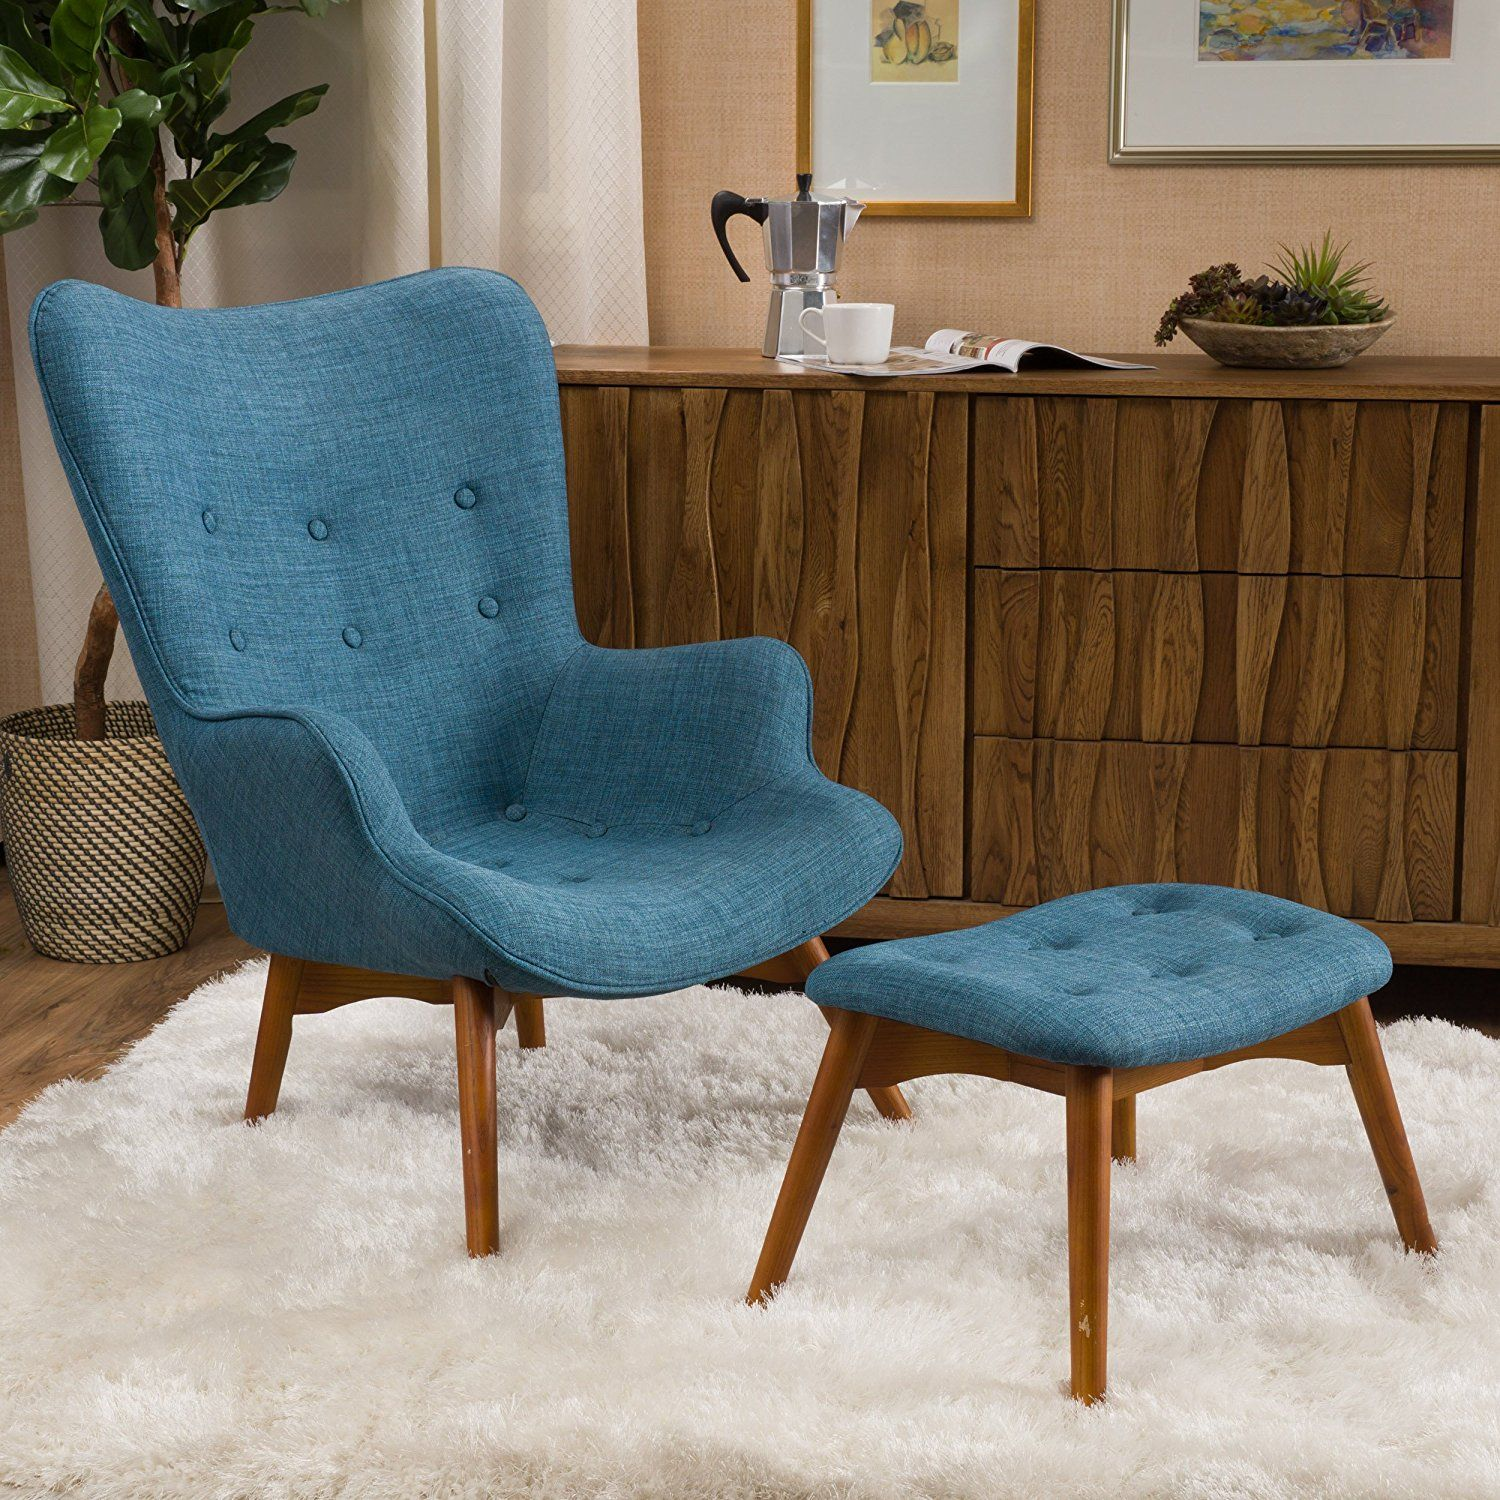 Amazon.com: Acantha Mid Century Modern Retro Contour Chair with ...